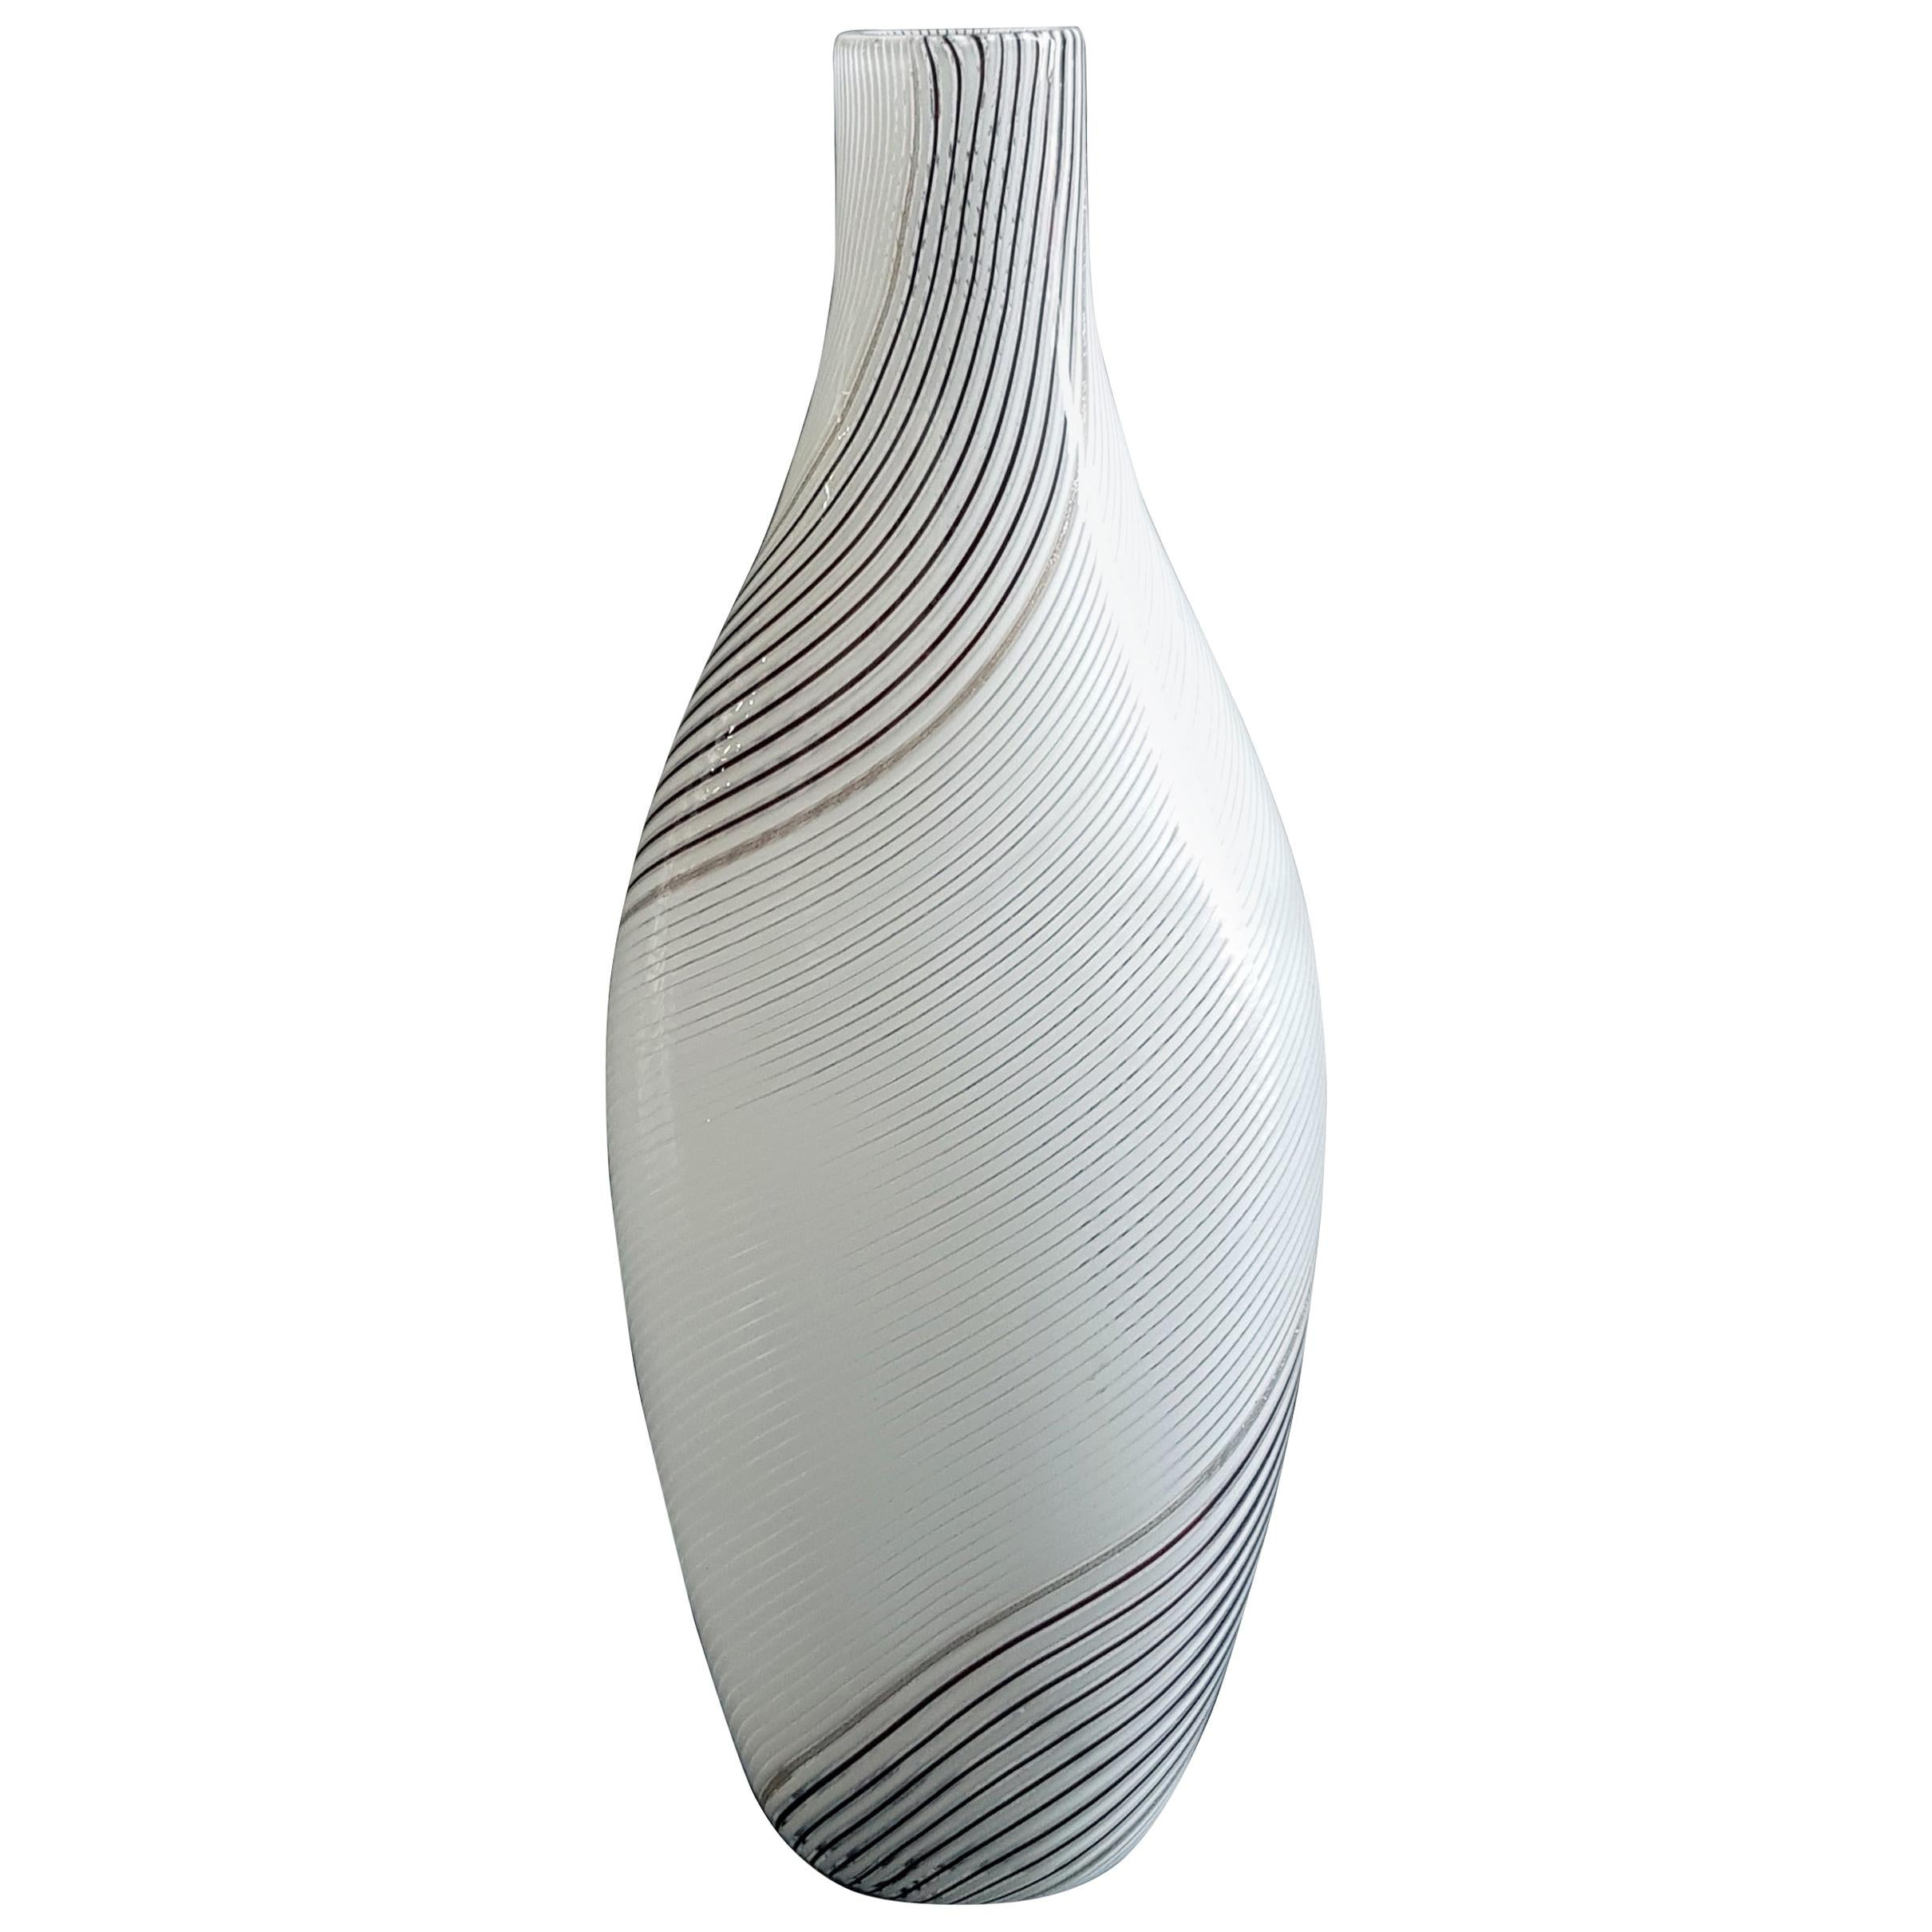 """Vintage Murano Glass Vase Model """"5357"""" by D. Martens and A. Toso, 1950s"""